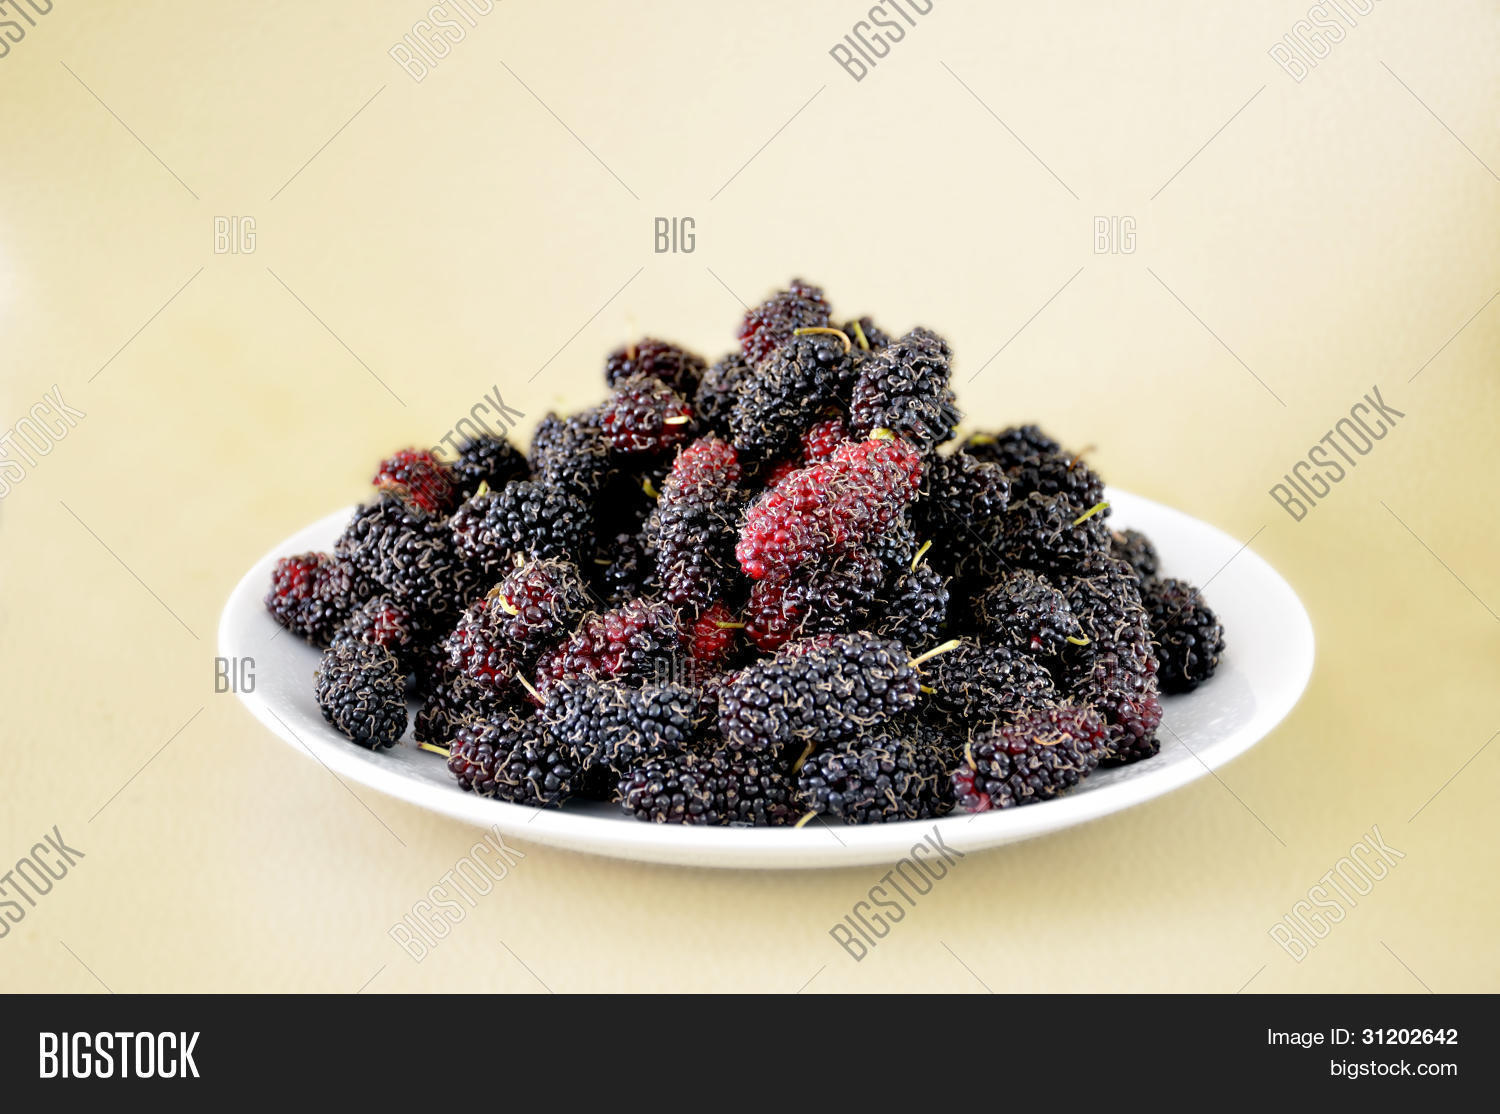 Mulberries Image Photo Free Trial